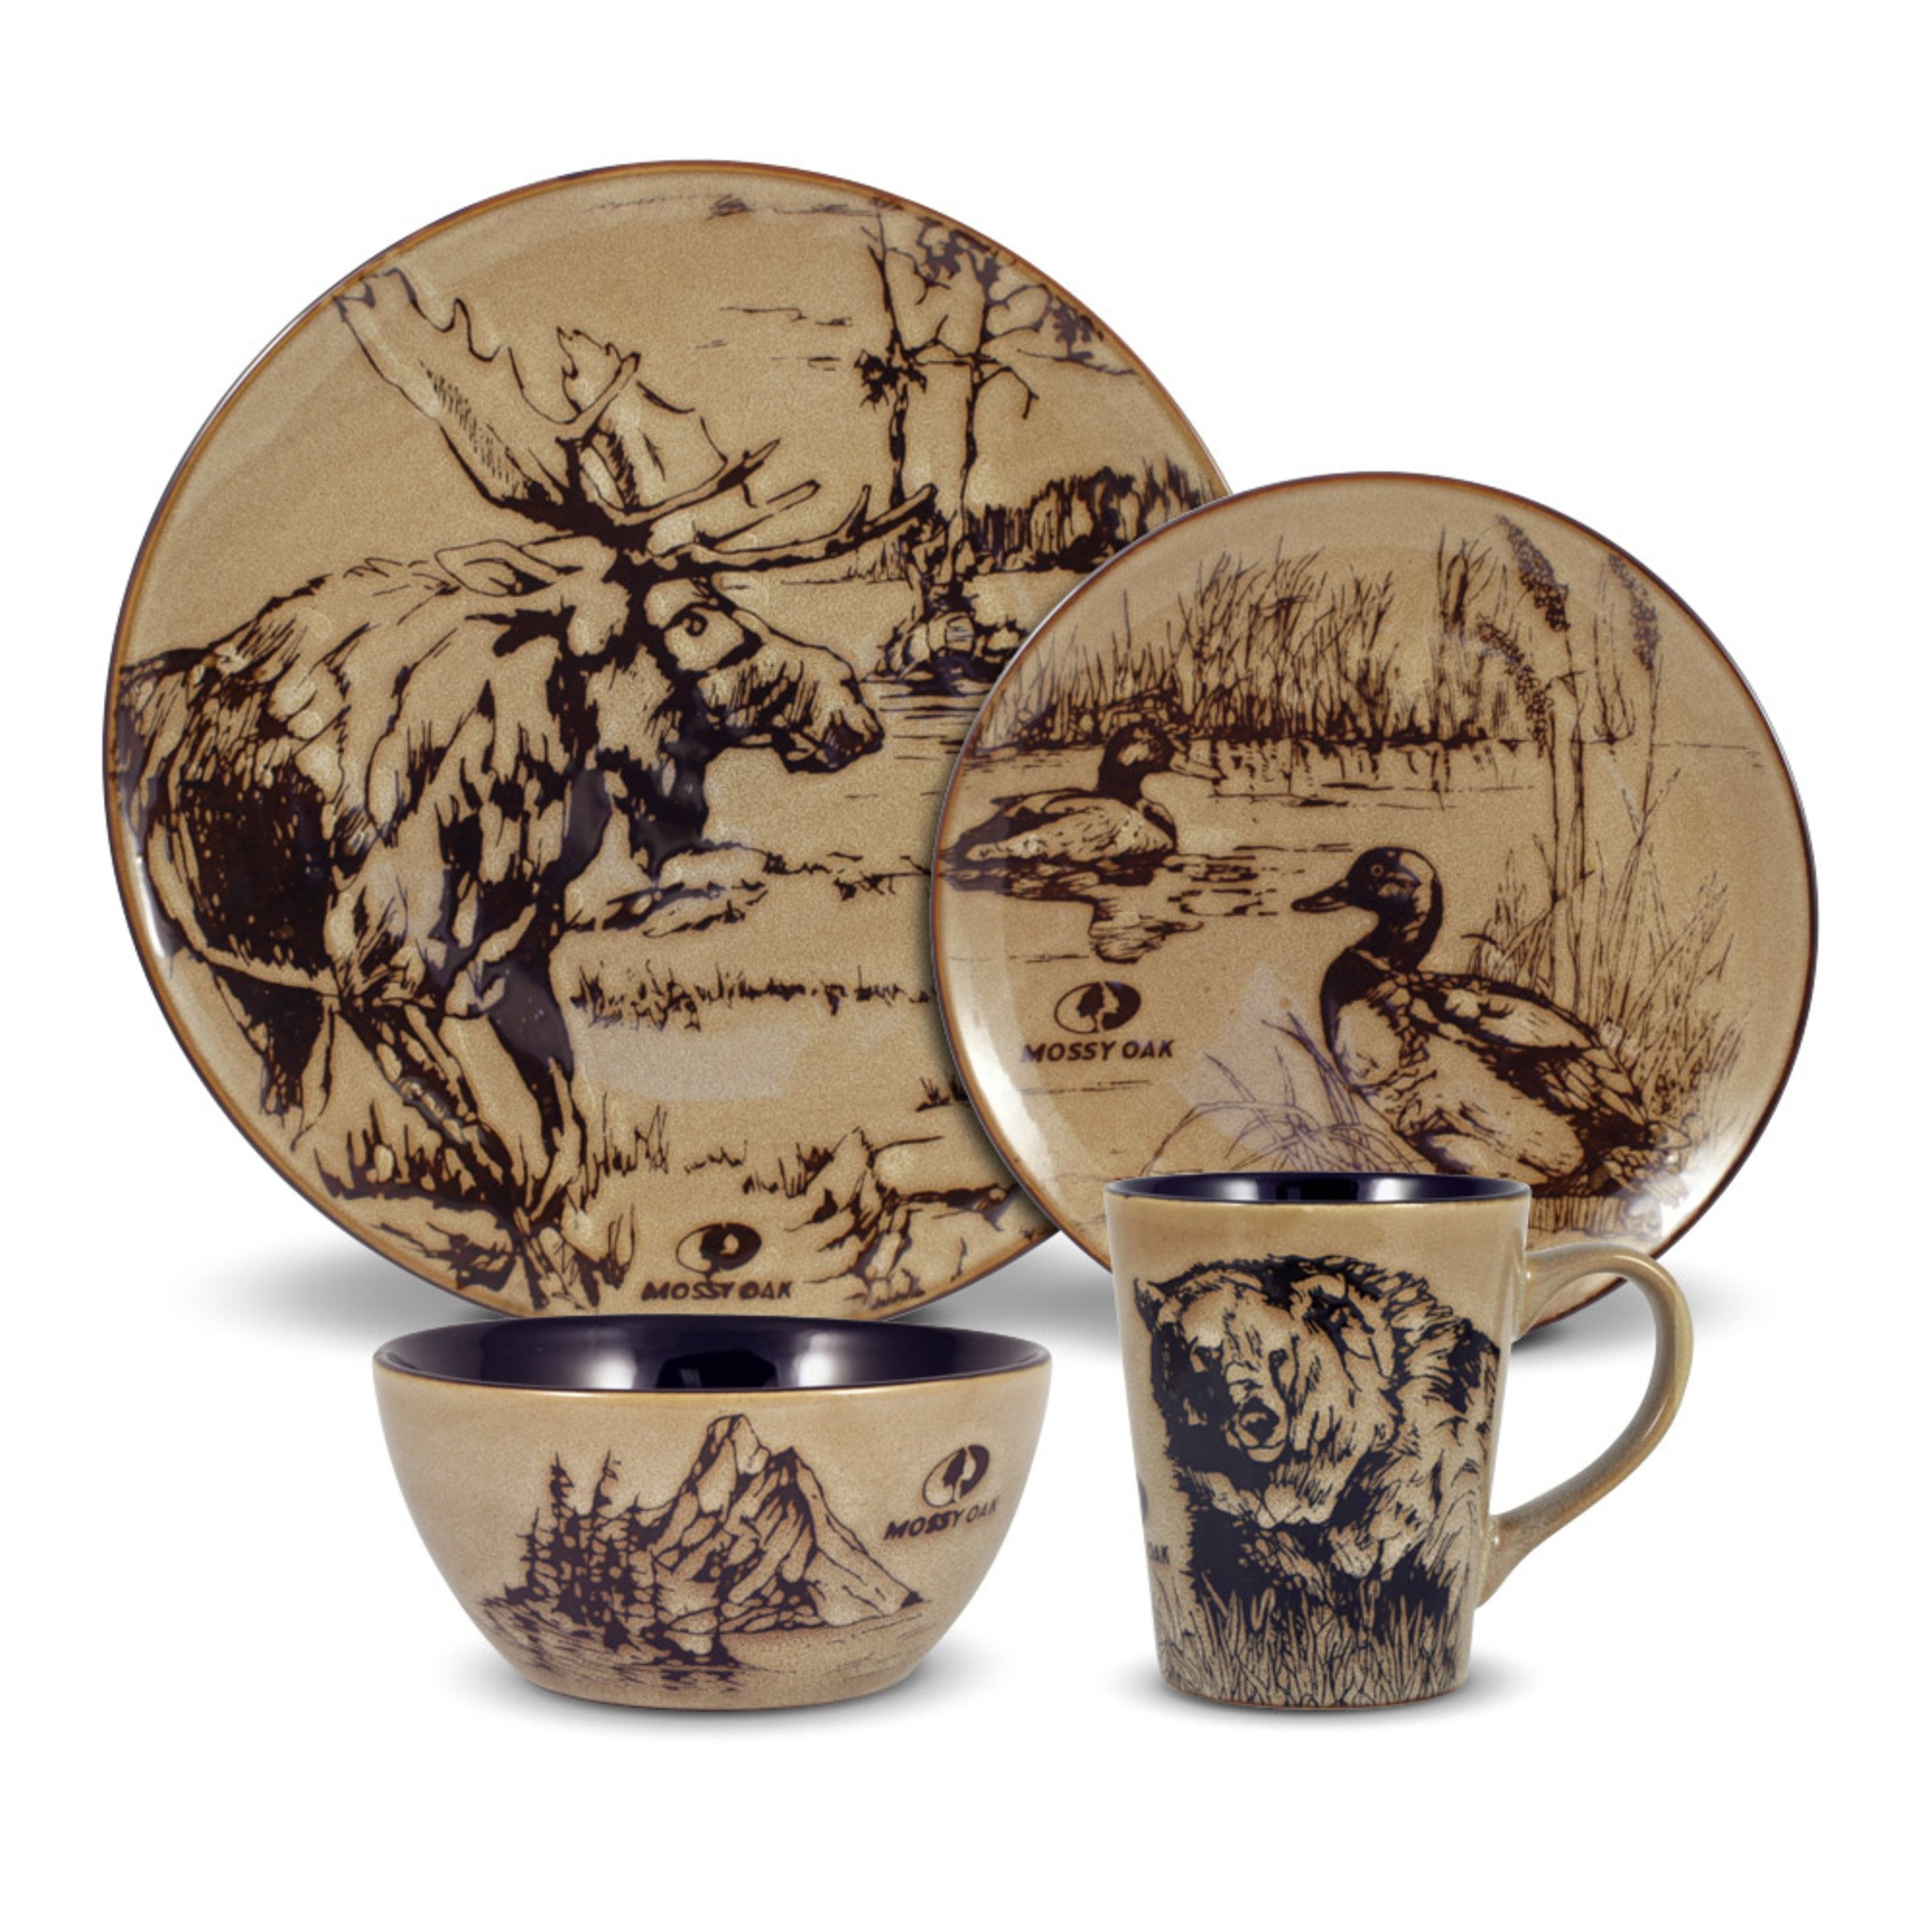 Mossy Oak 5137679 Animal Print Dinnerware Set, Assorted